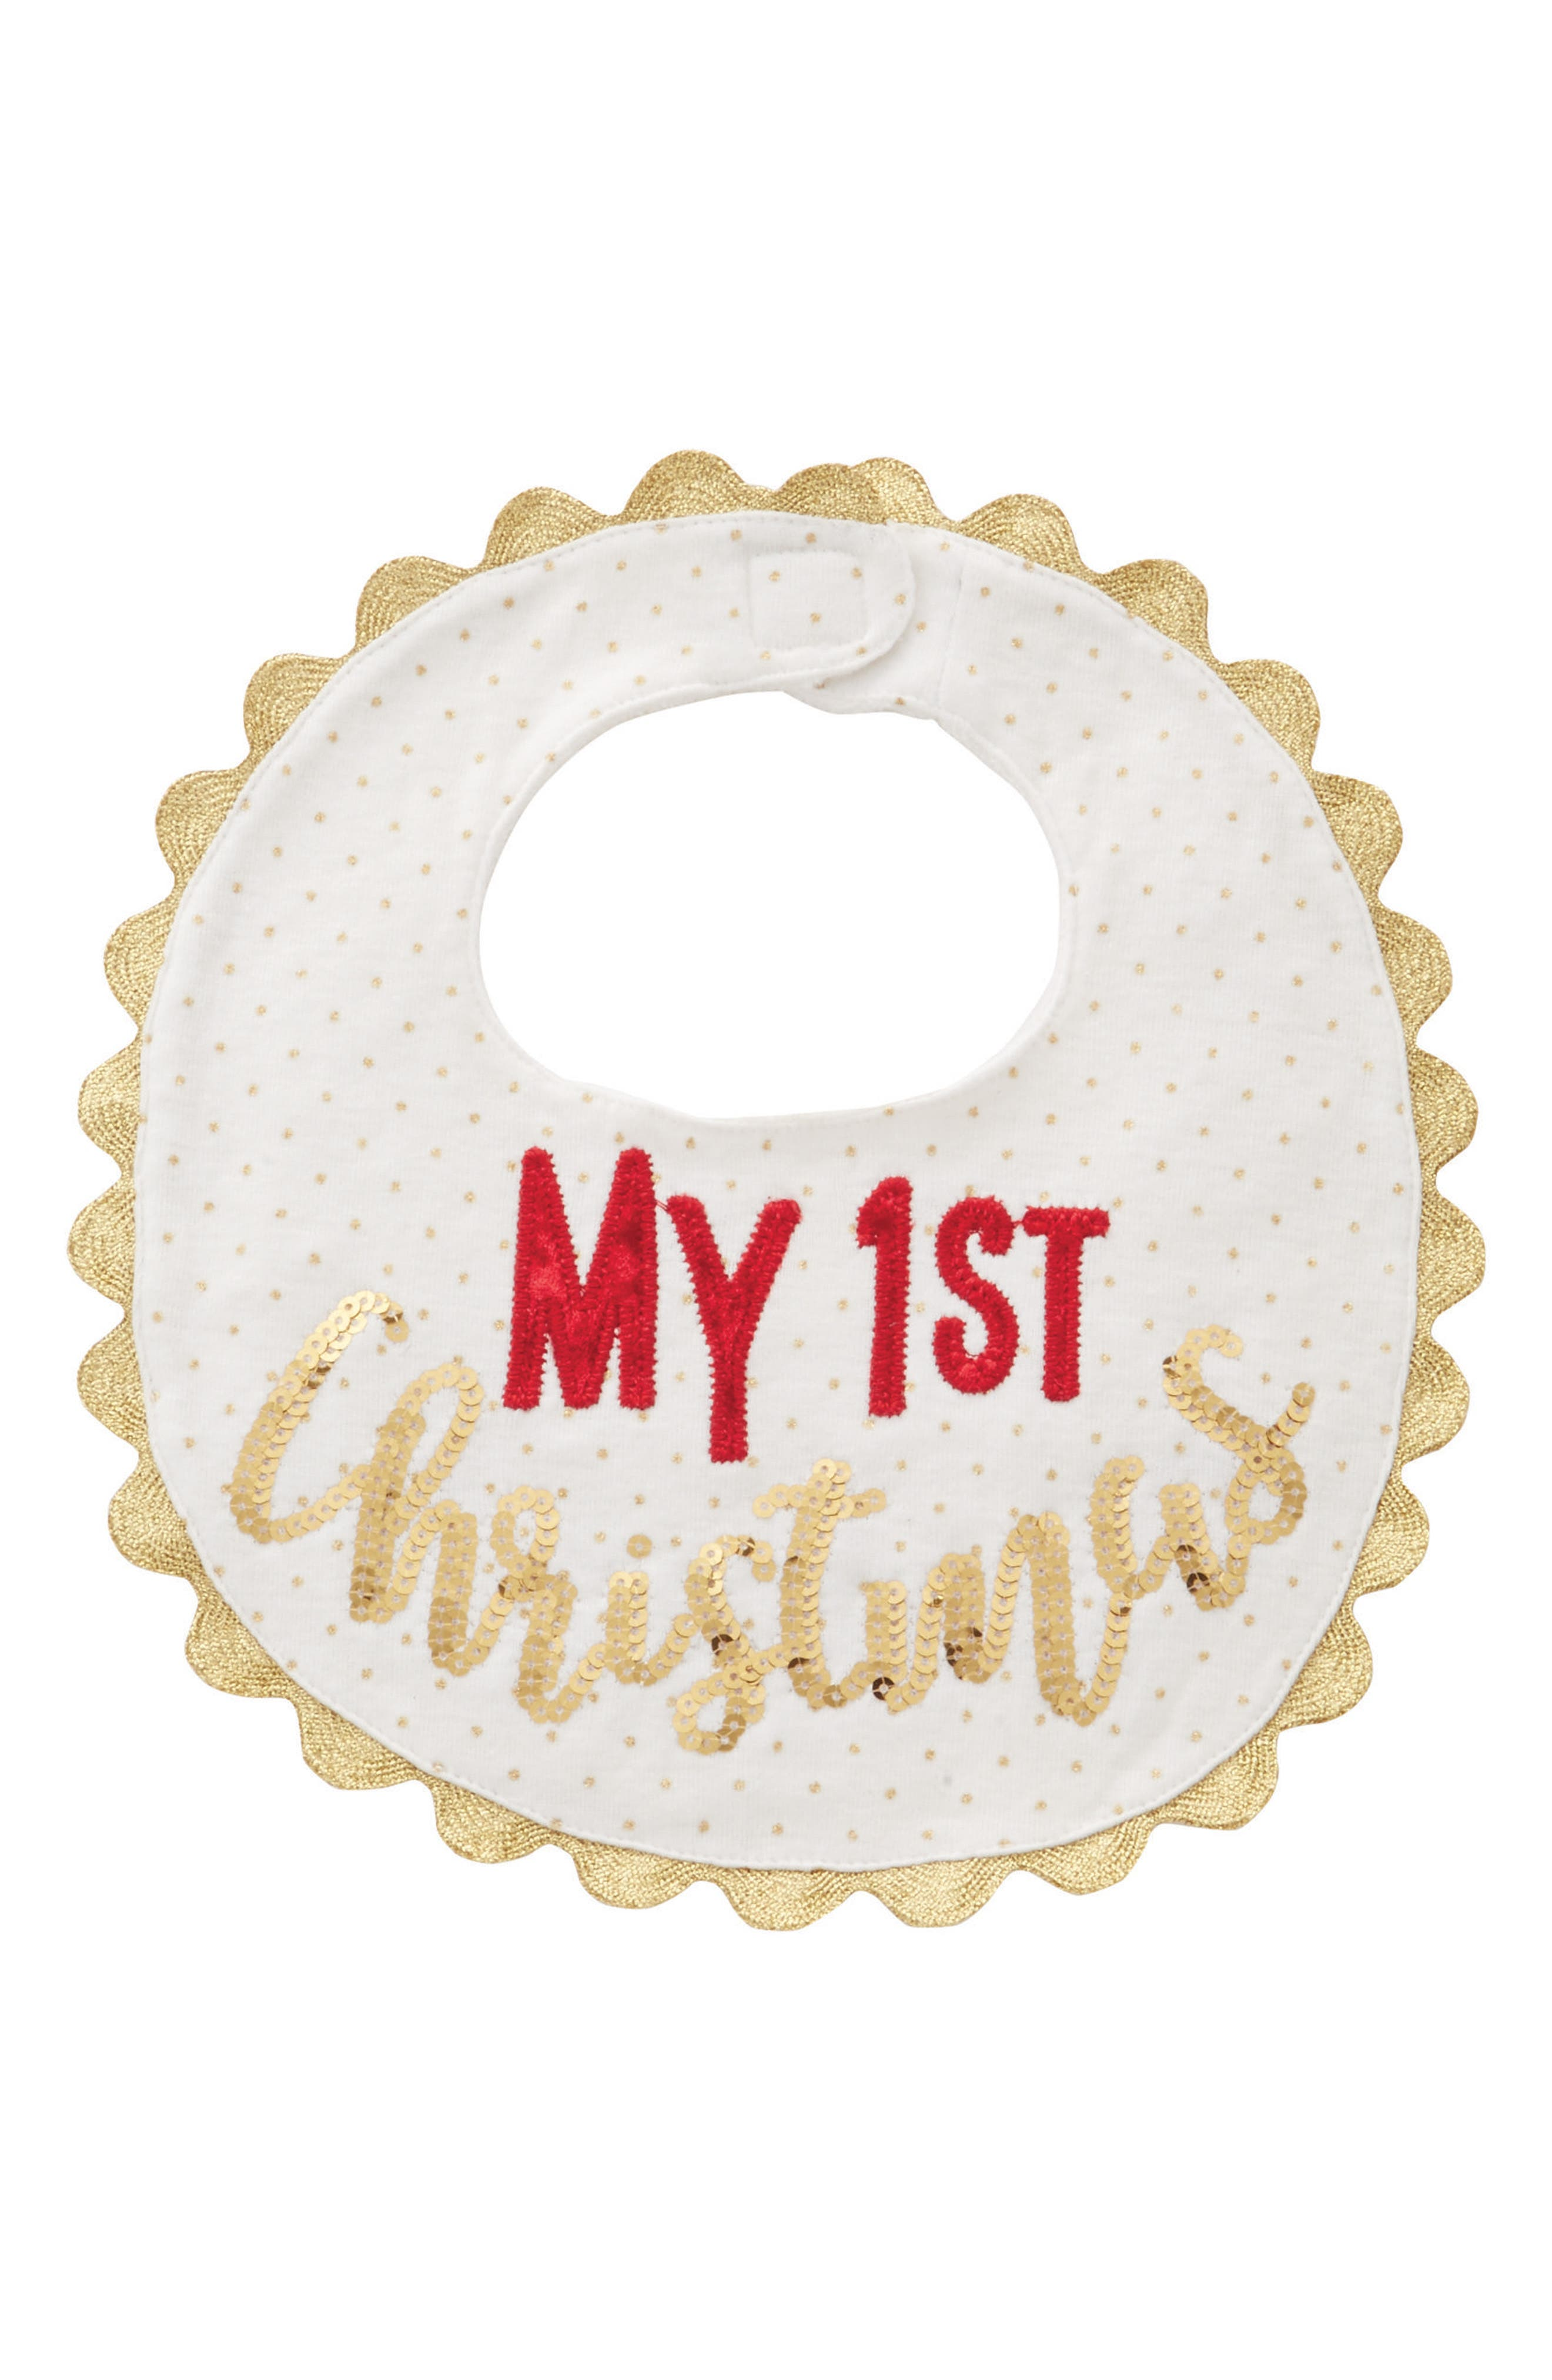 My First Christmas Bib,                         Main,                         color, Gold/ Red